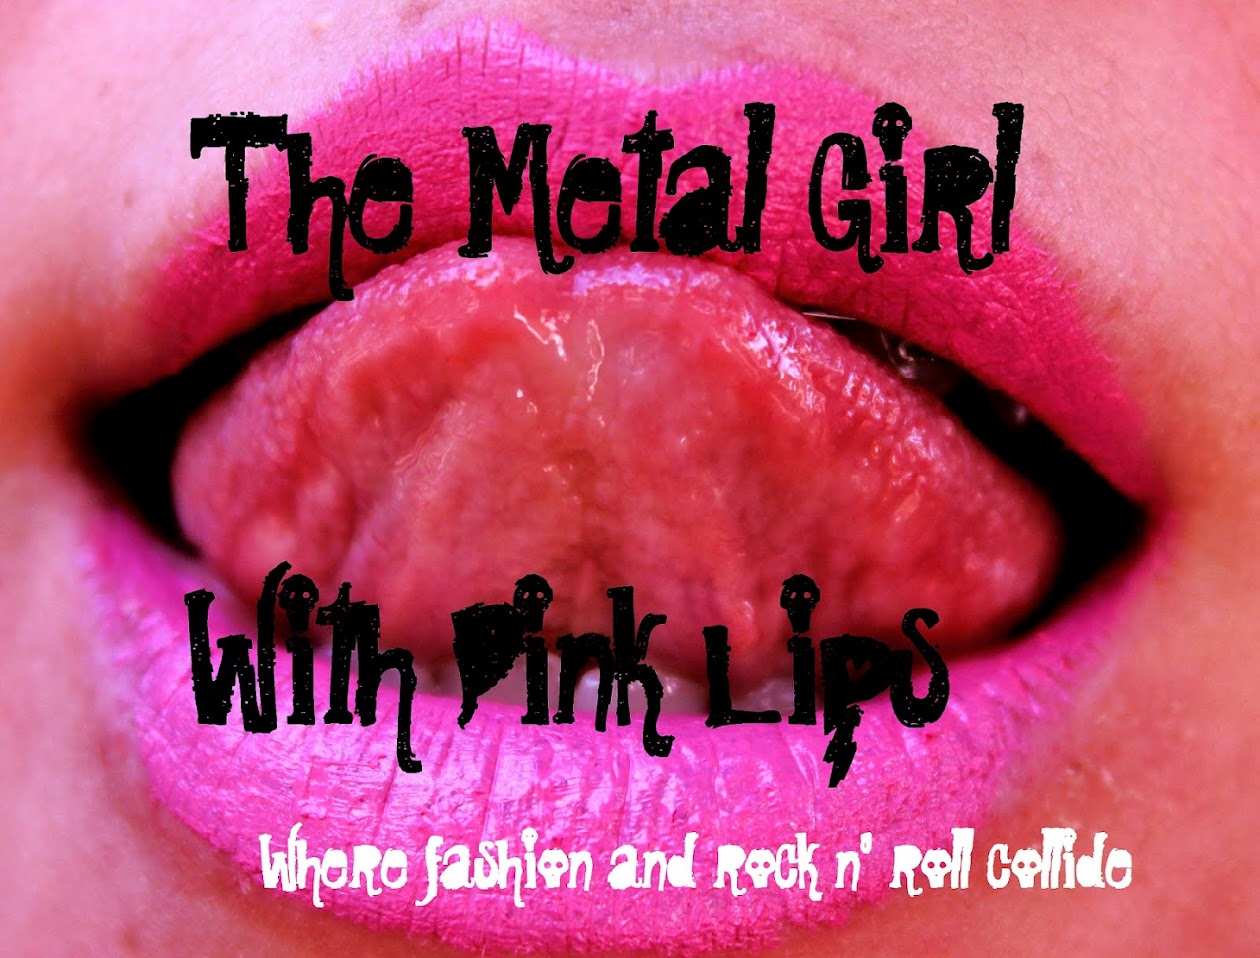 The Metal Girl With Pink Lips